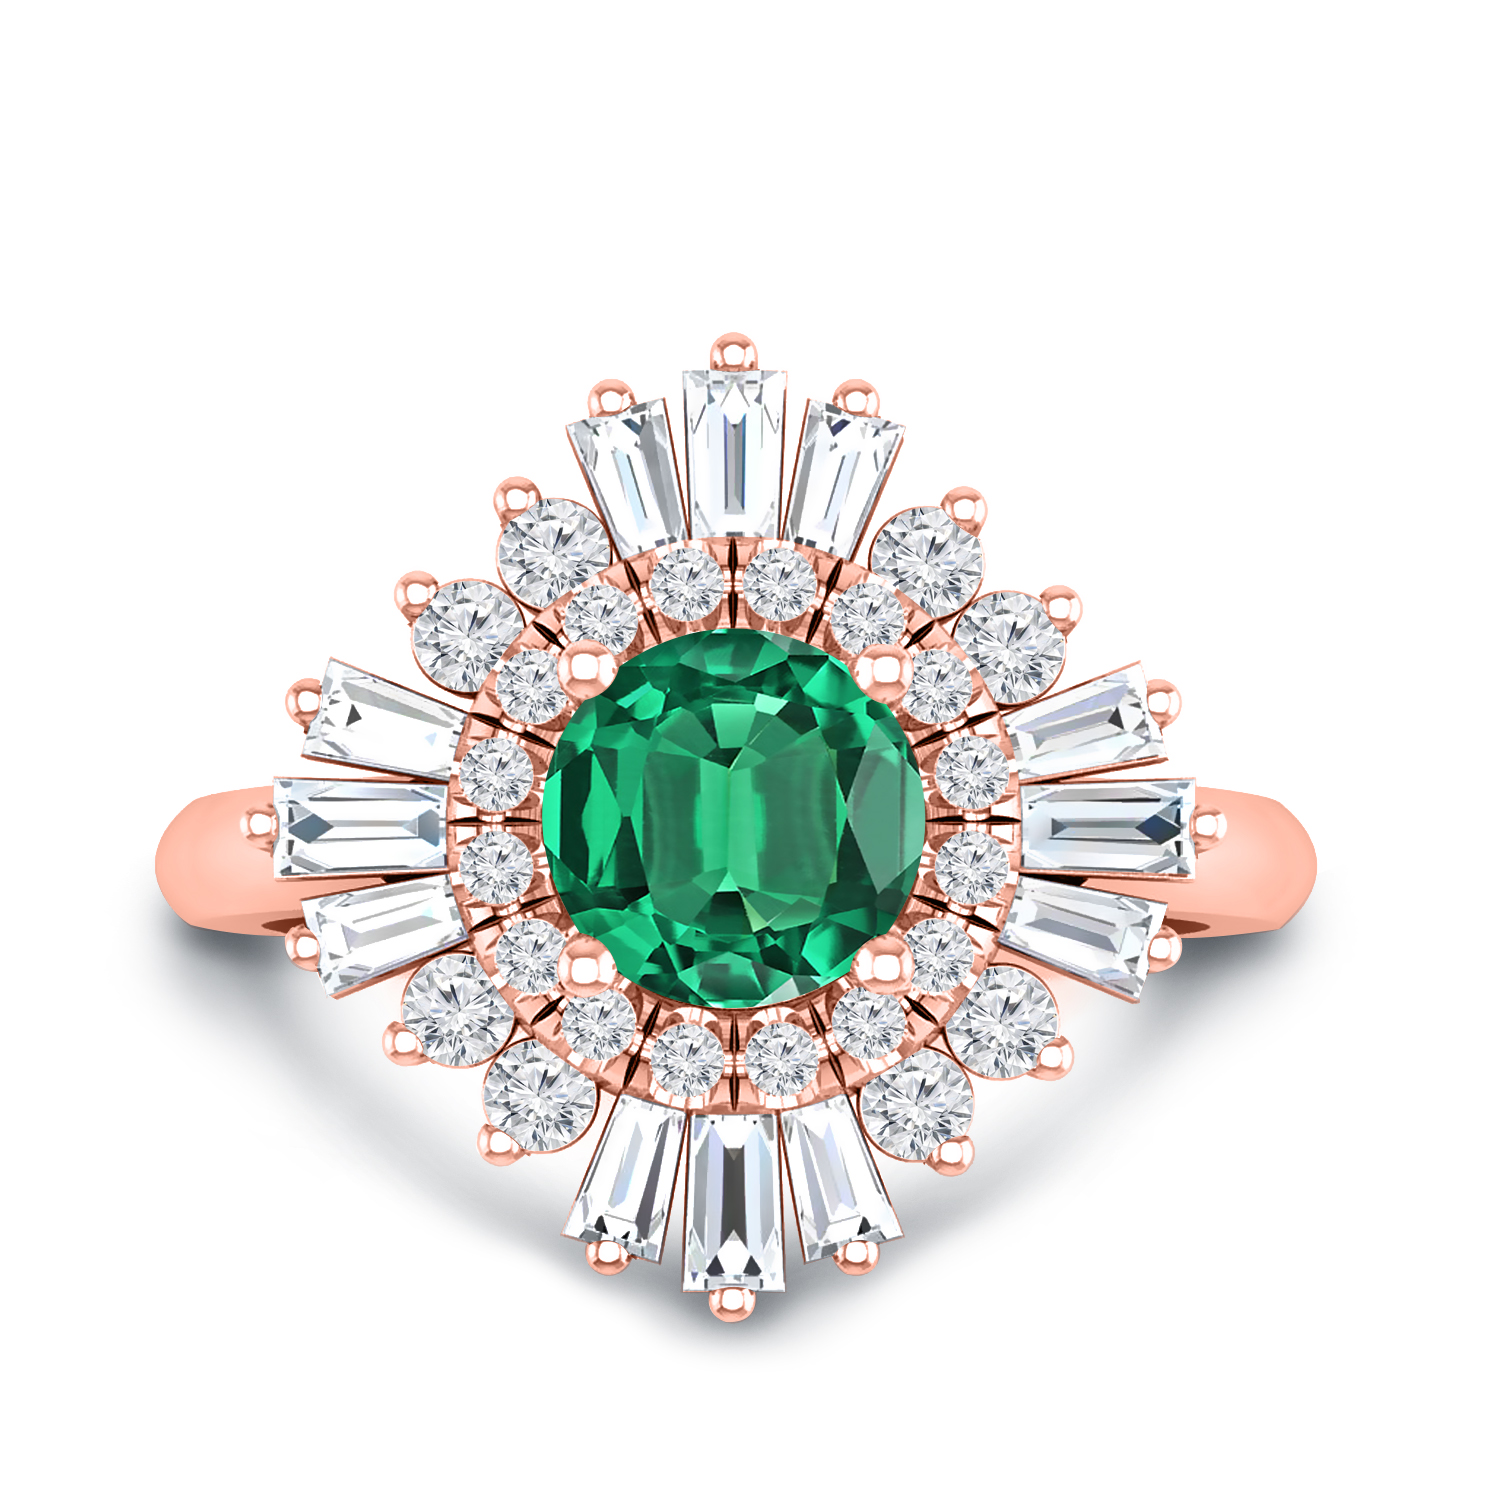 CHARLESTON Ballerina Halo Green Emerald Engagement Ring In 14K Rose Gold With 0.50 Carat Round Stone